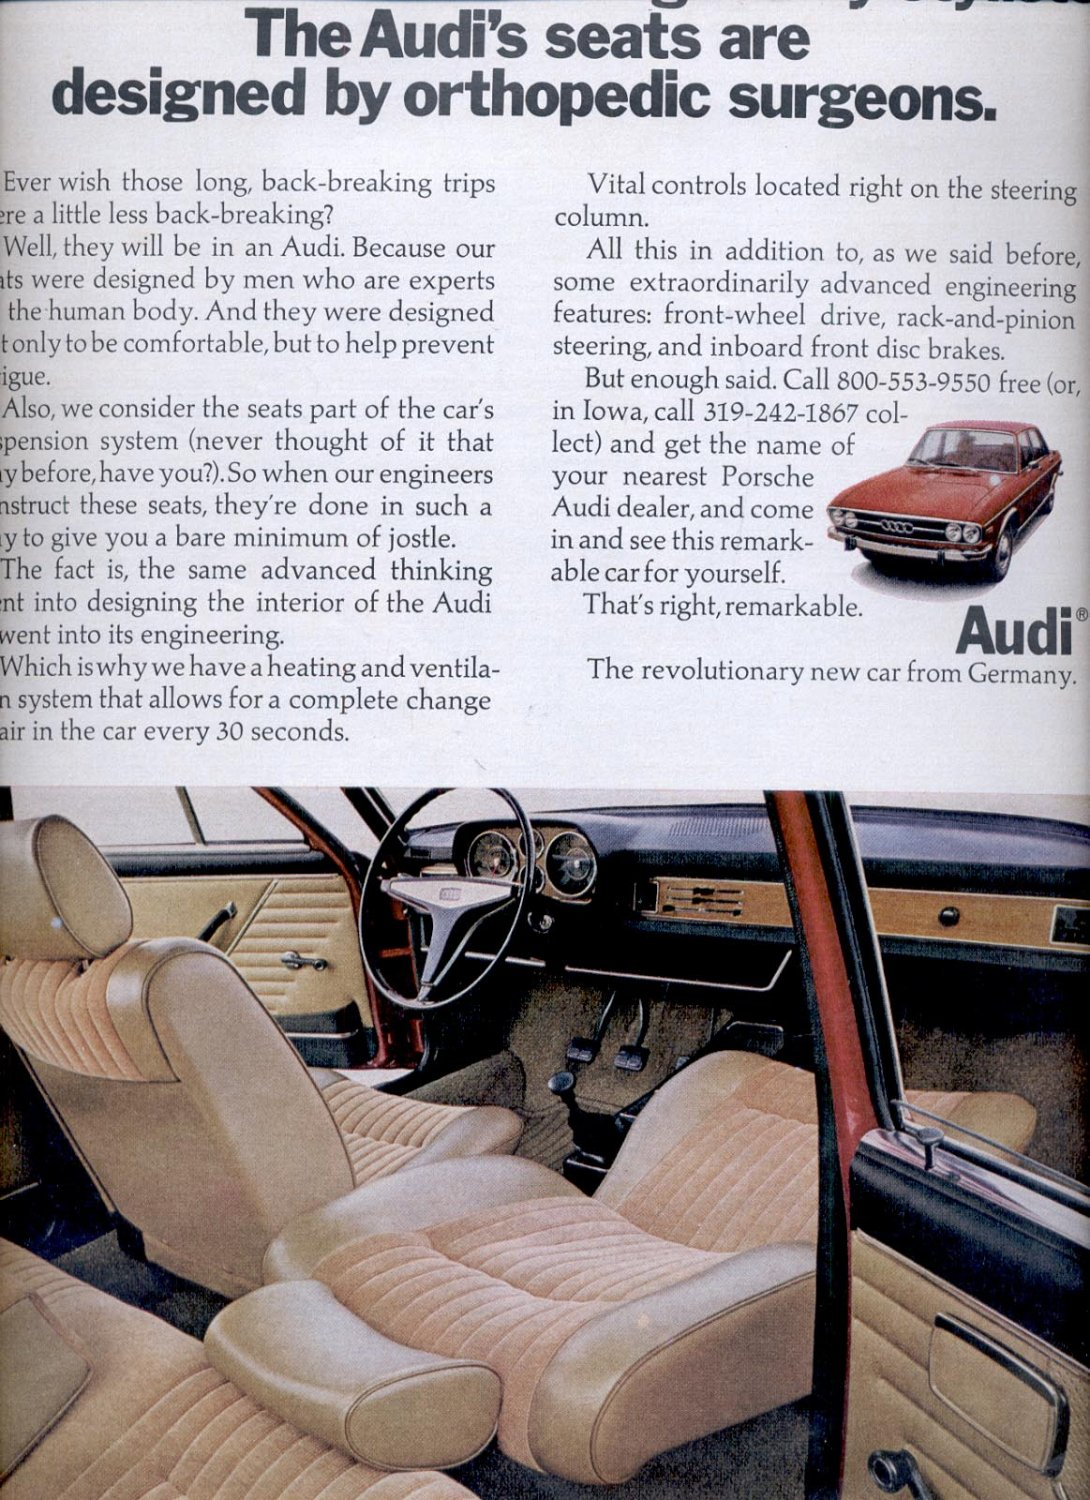 July 31, 1970  Audi car     ad  (# 2835)